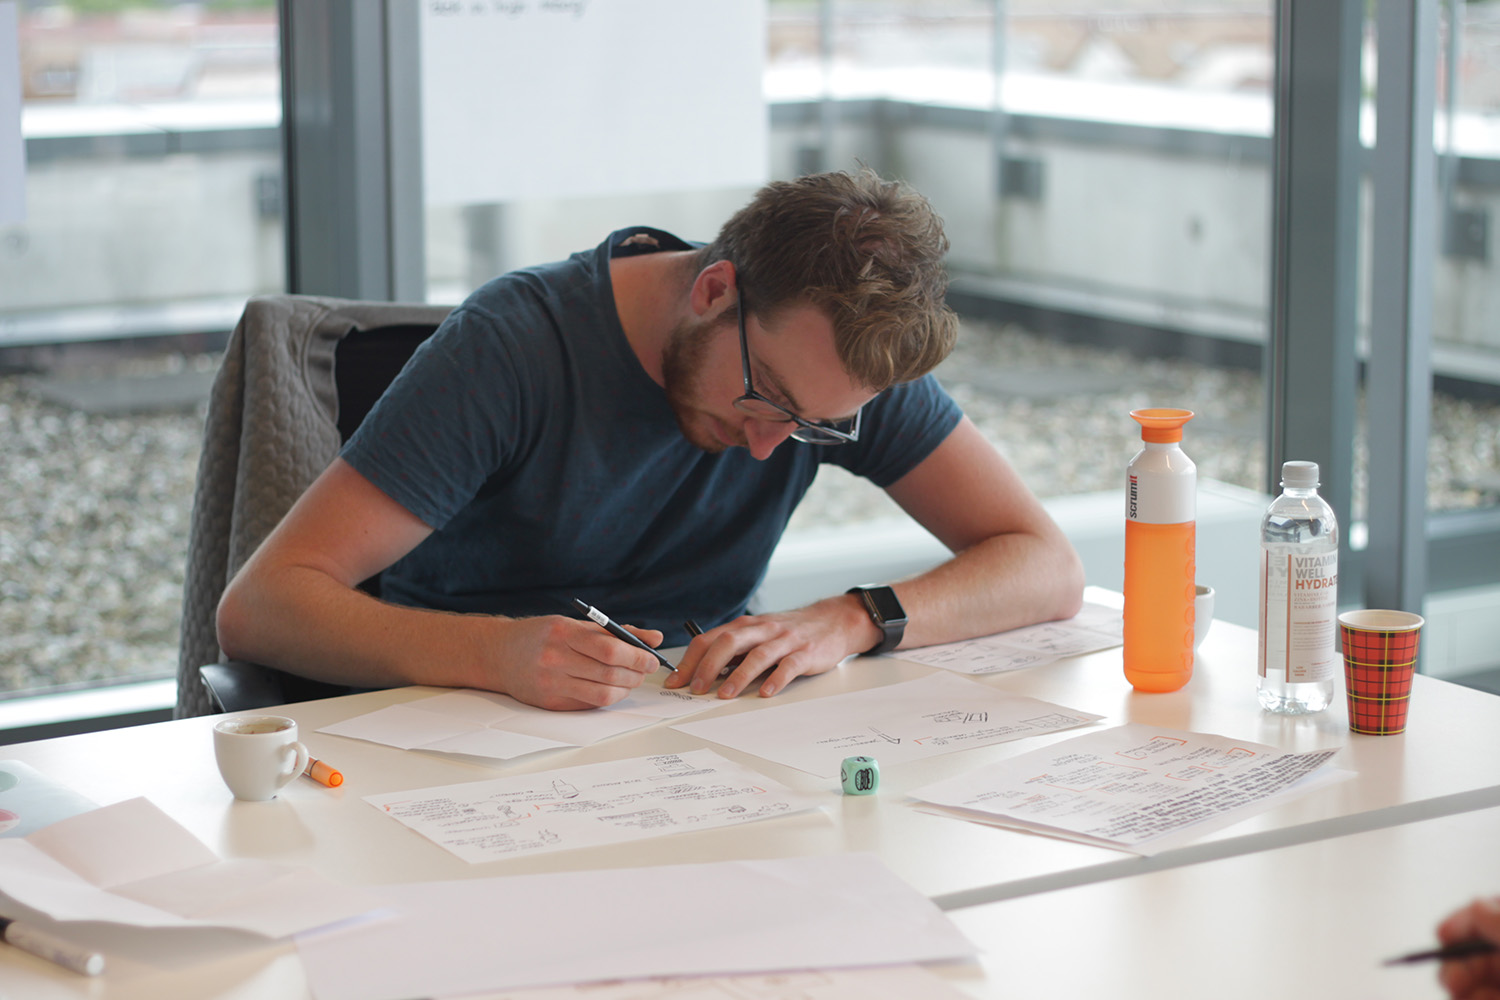 Sketching Design Sprint Quion